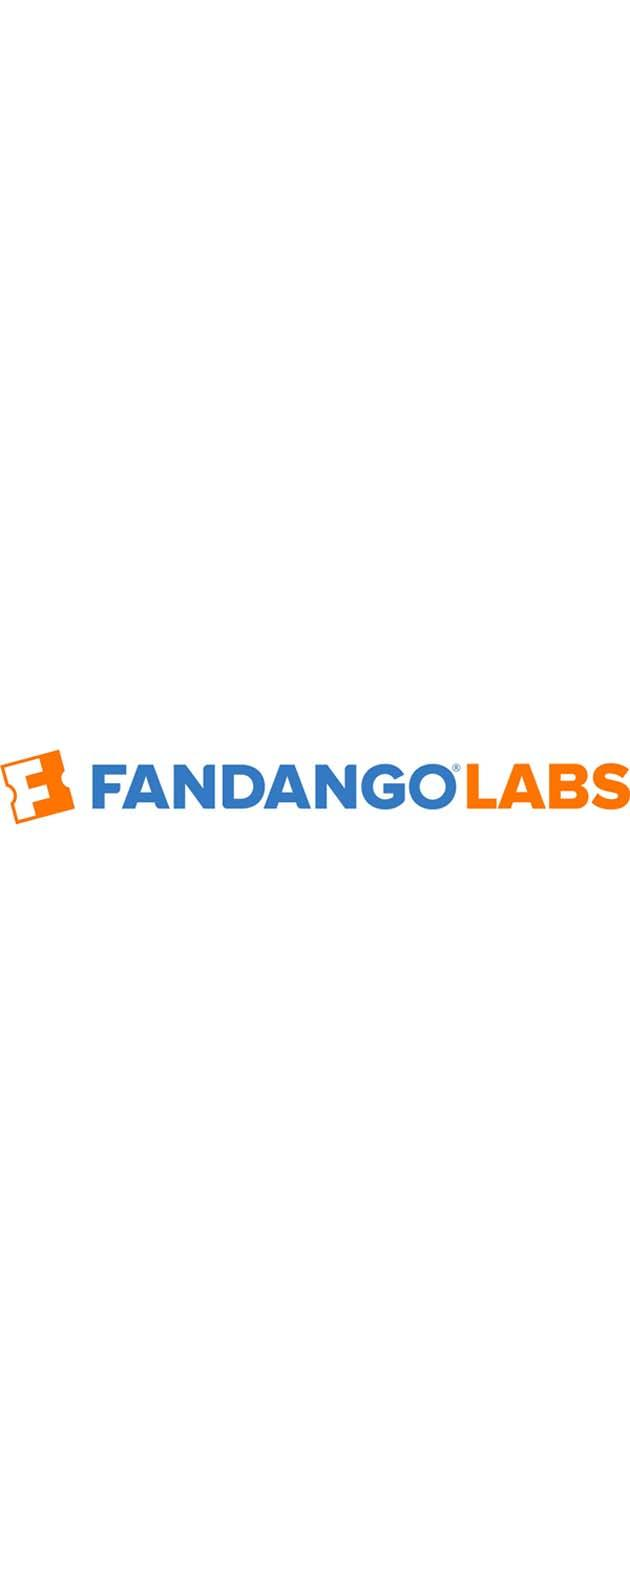 FandangoLabs Launches To Develop Moviegoing Products & Services